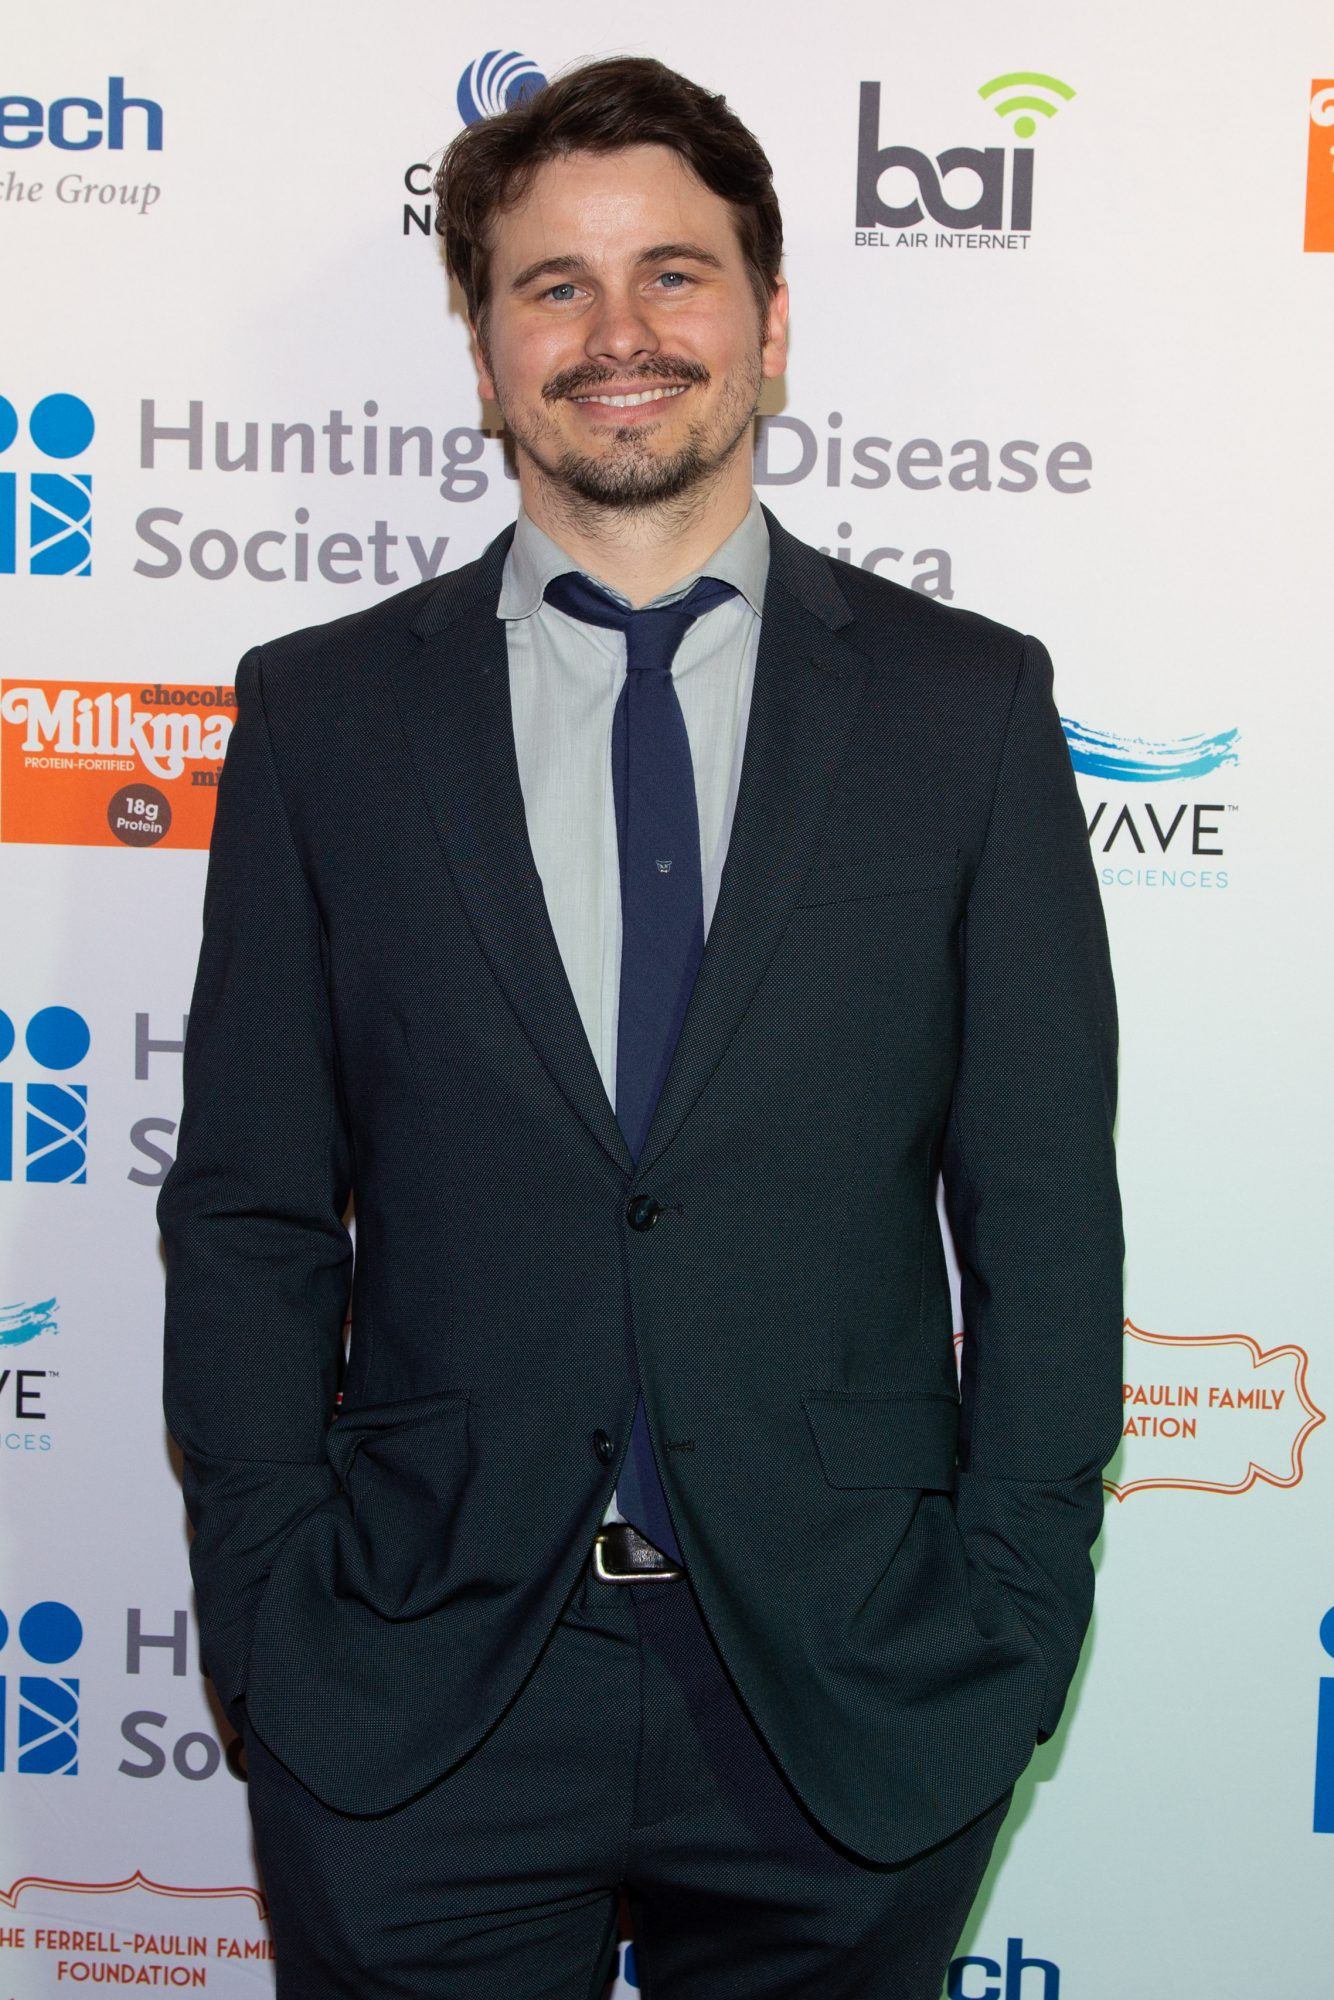 LOS ANGELES, CALIFORNIA - SEPTEMBER 28: Jason Ritter arrives for the 5th Annual Freeze HD Gala at Avalon Hollywood on September 28, 2019 in Los Angeles, California. (Photo by Gabriel Olsen/Getty Images)